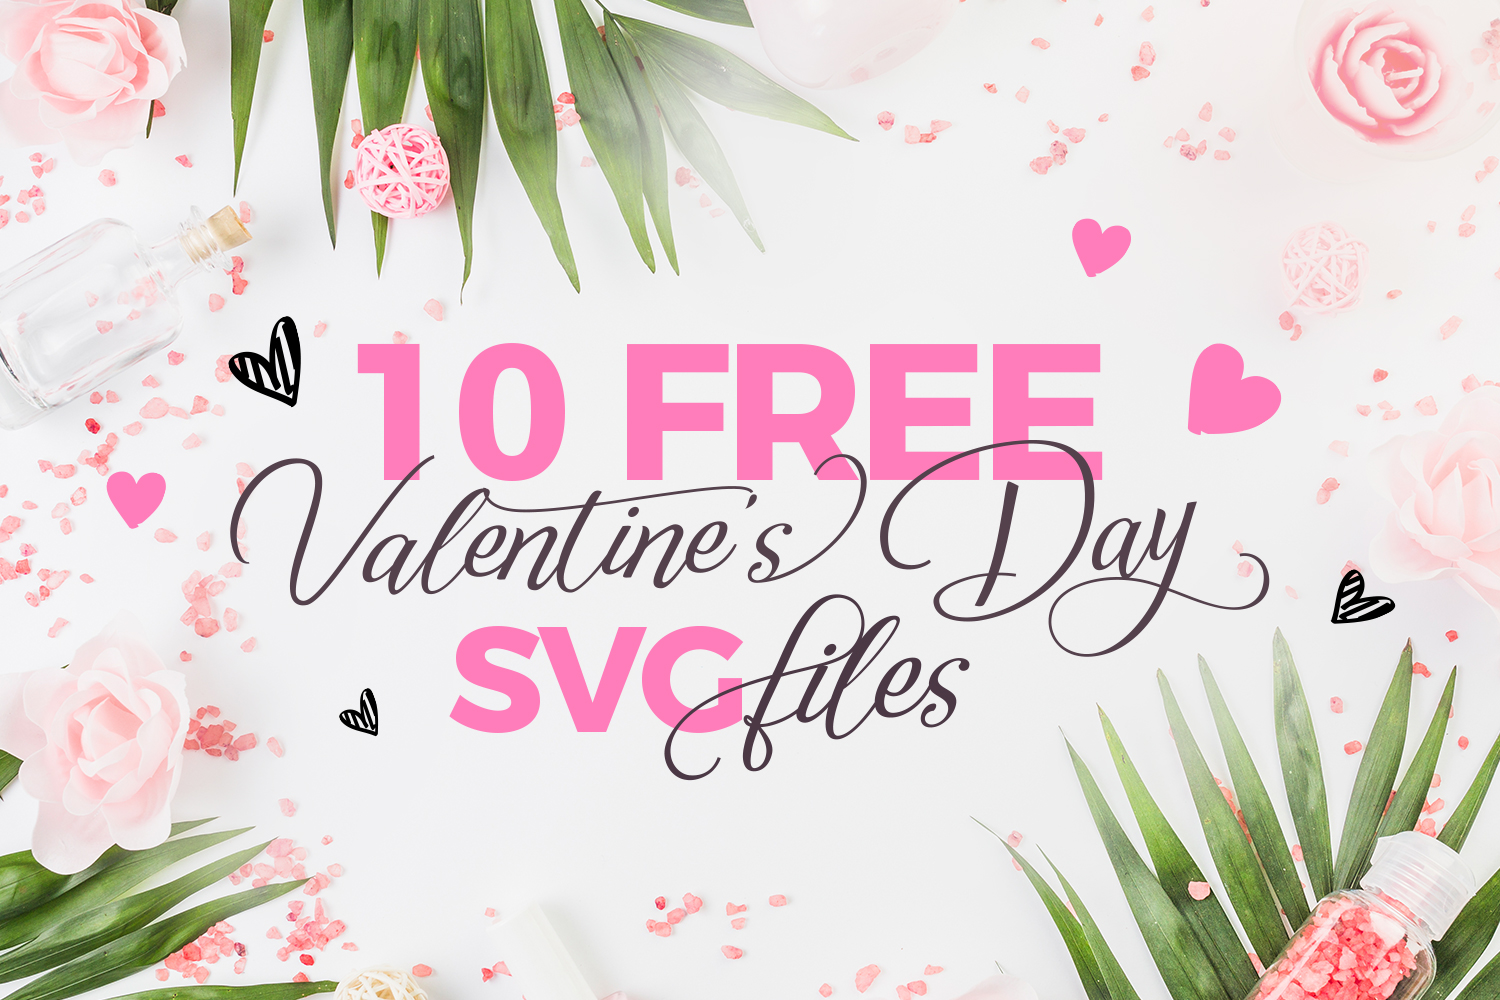 10 FREE Valentine's Day SVG files